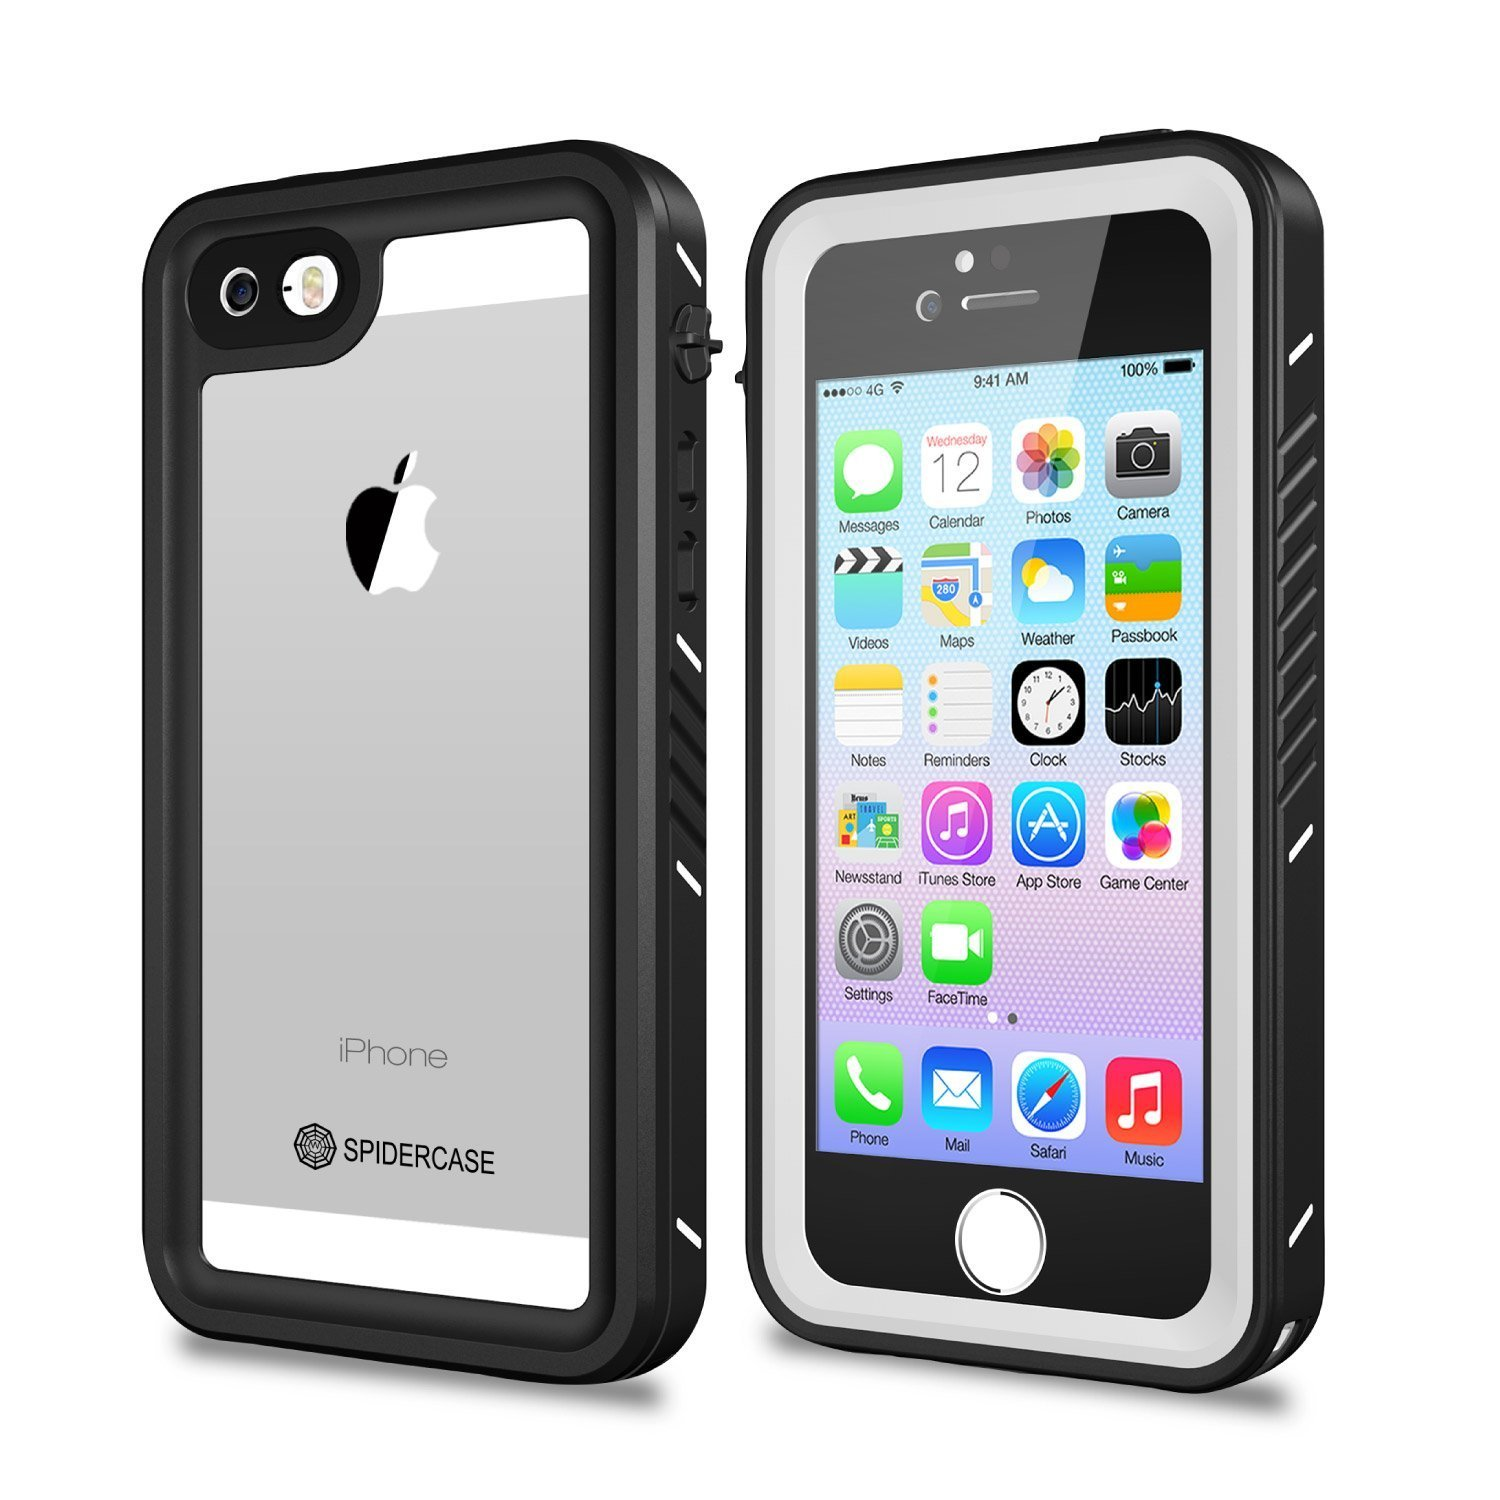 iPhone 5/5S/SE Waterproof Case,SPIDERCASE Full Body Protective Cover Rugged Dustproof Snowproof IP68 Certified Waterproof Case Touch ID iPhone 5S 5 SE (White&Clear) by SPIDERCASE (Image #1)